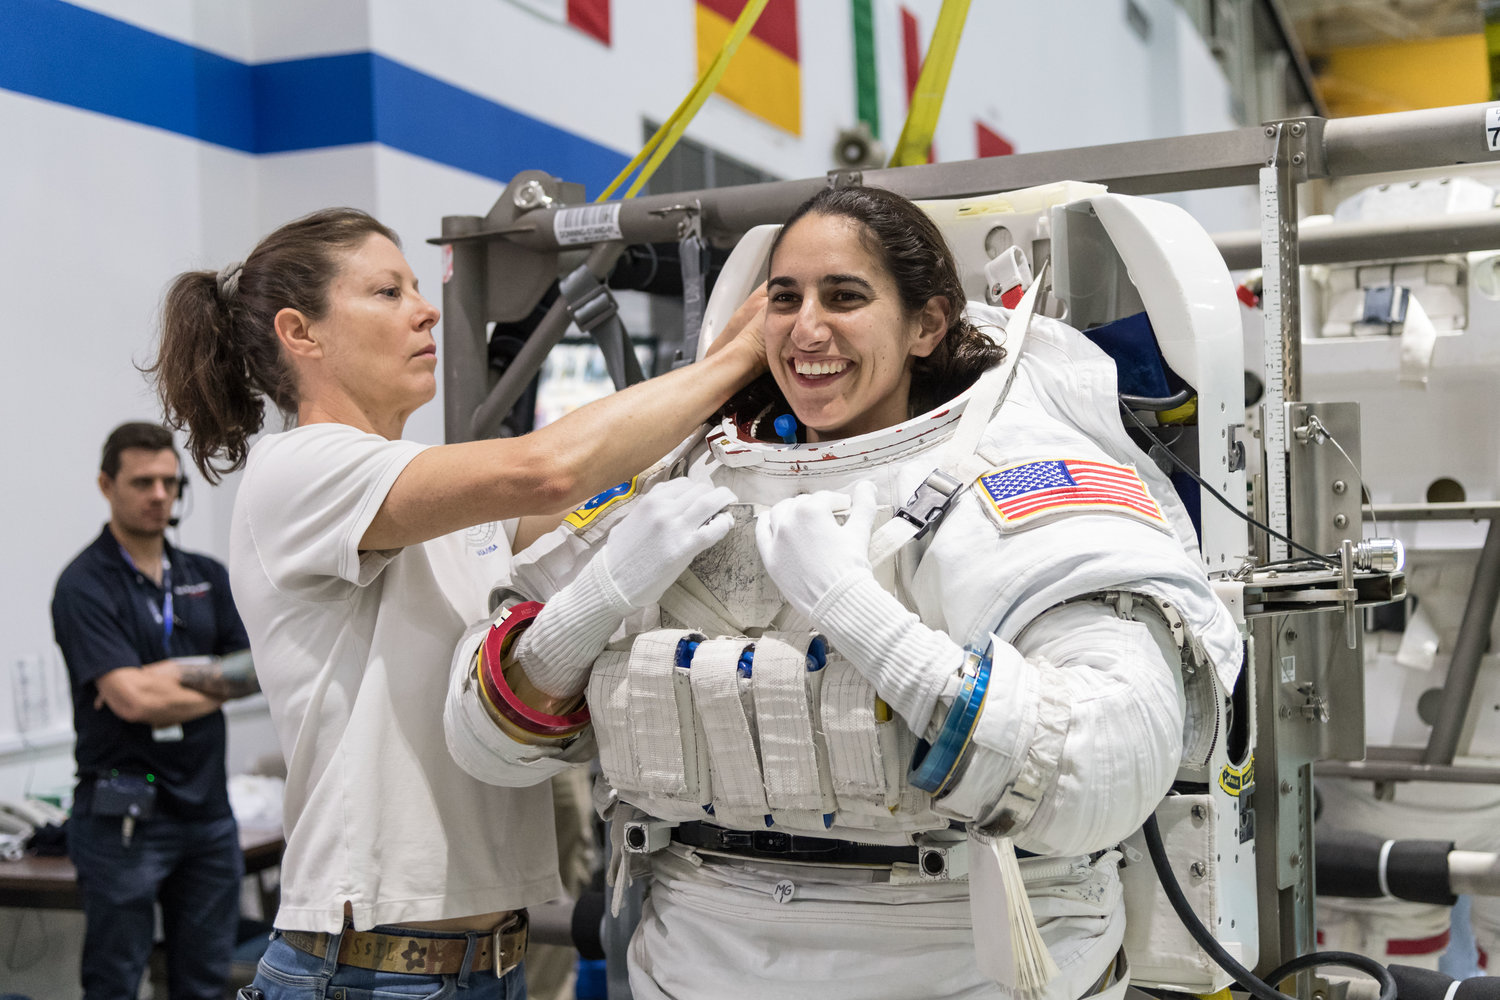 Baldwin native Jasmin Moghbeli, of NASA, could become the first woman to set foot on the moon. NASA announced details of its moon program last week, including the astronauts selected for the program, including Moghbeli, who joined the Artemis Team earlier this year. Above, Moghbeli at the Johnson Space Center in Houston.